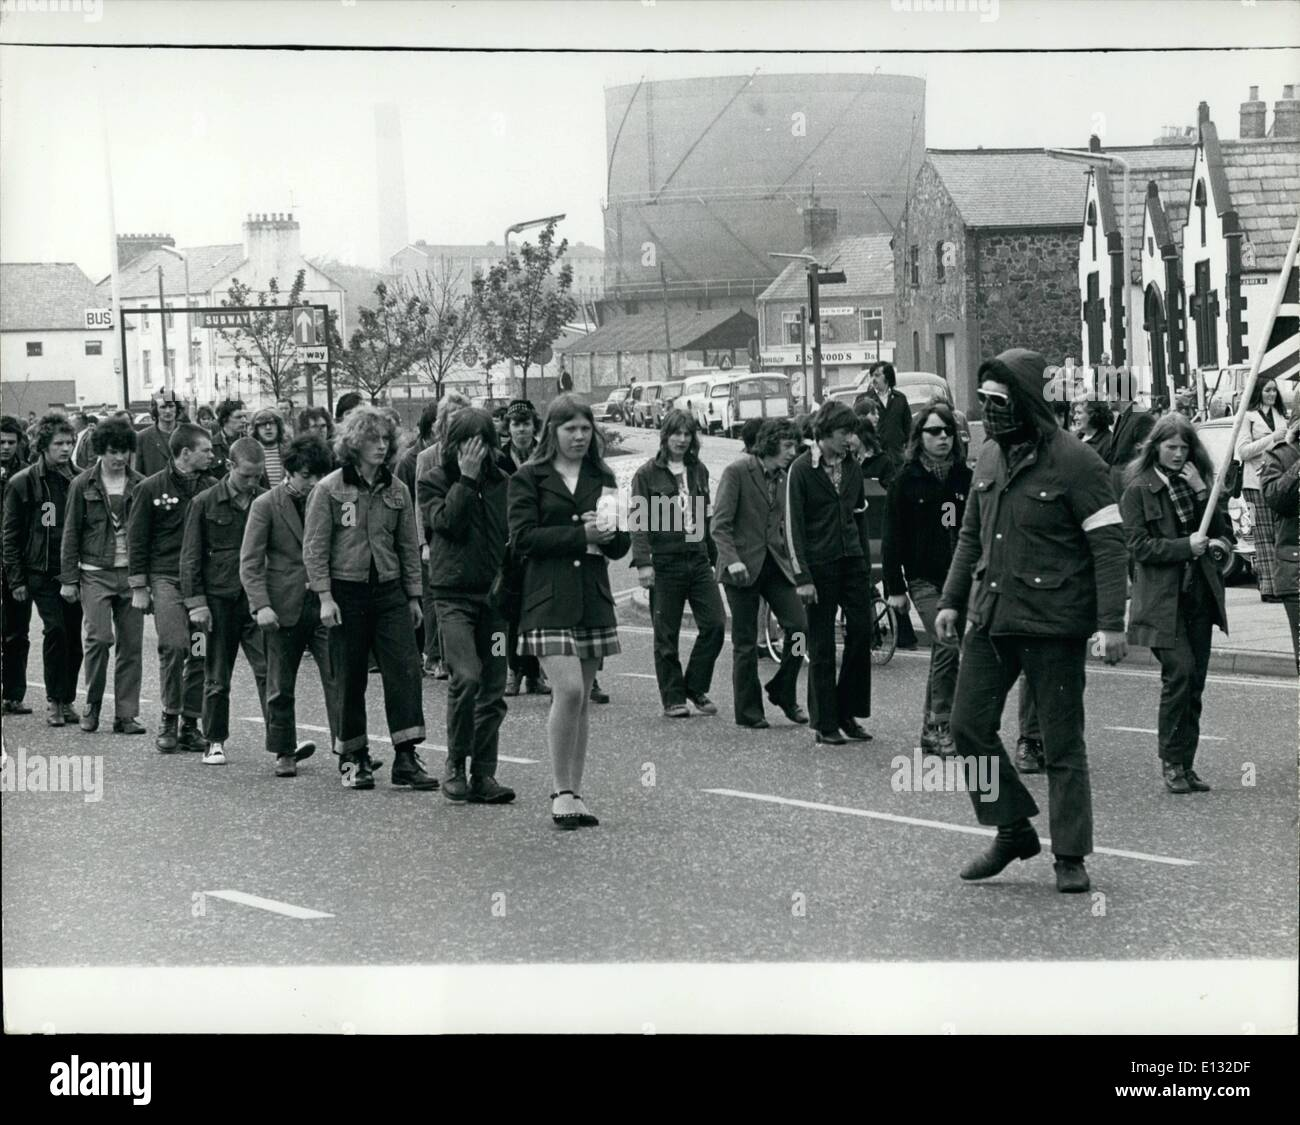 Feb. 26, 2012 - Protestant Tartan Gangs near Belfast, N. Ireland - Stock Image